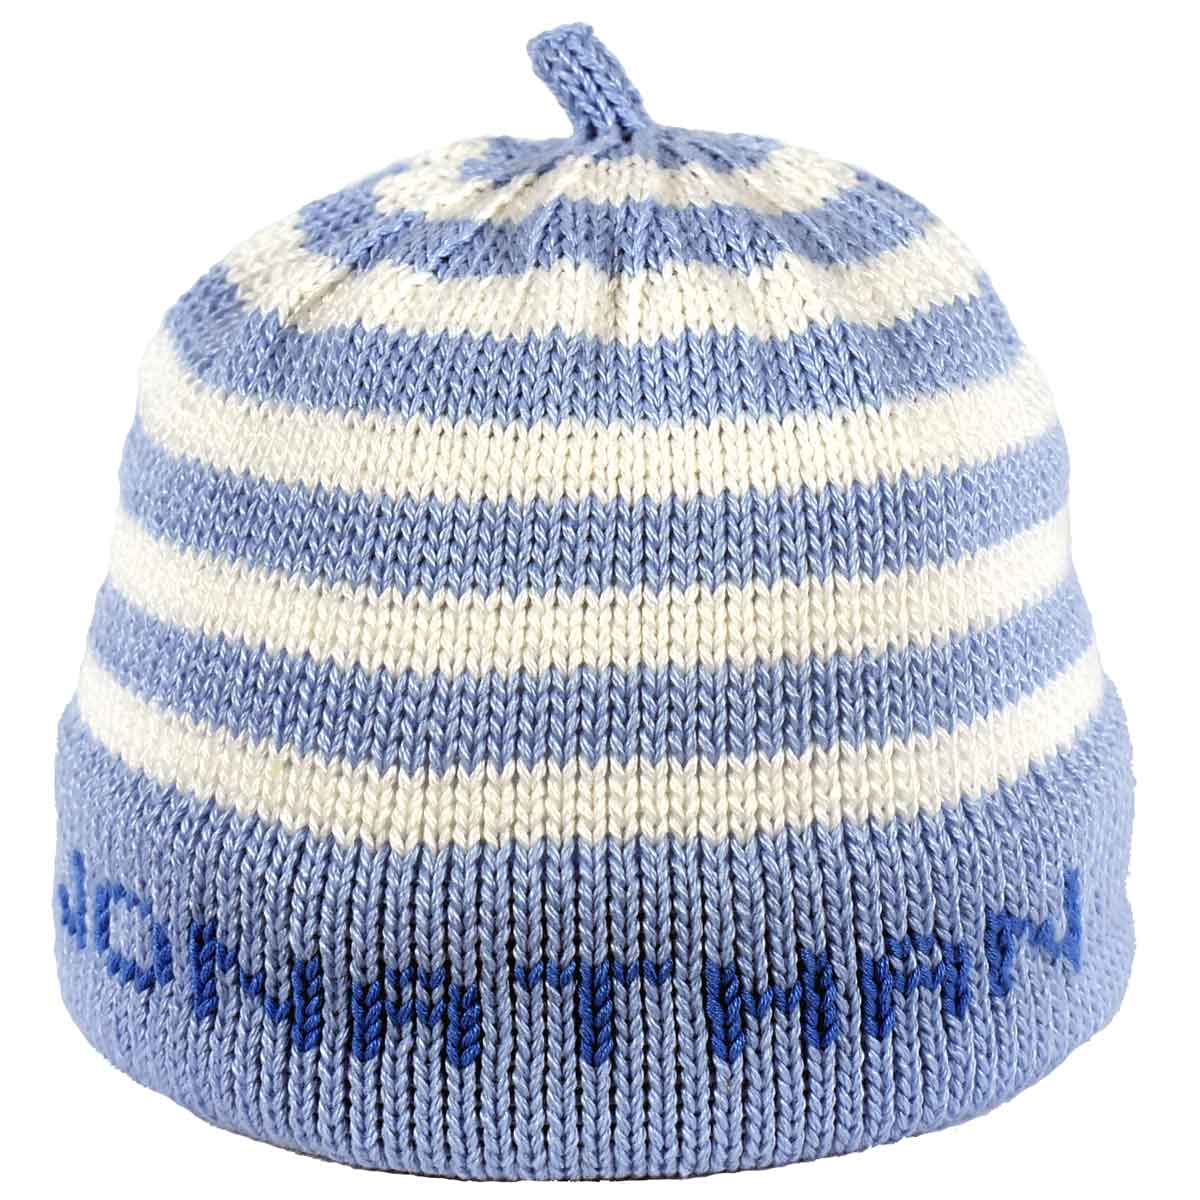 99f356103 Personalized Knit Hat – Blue Stripes and Band